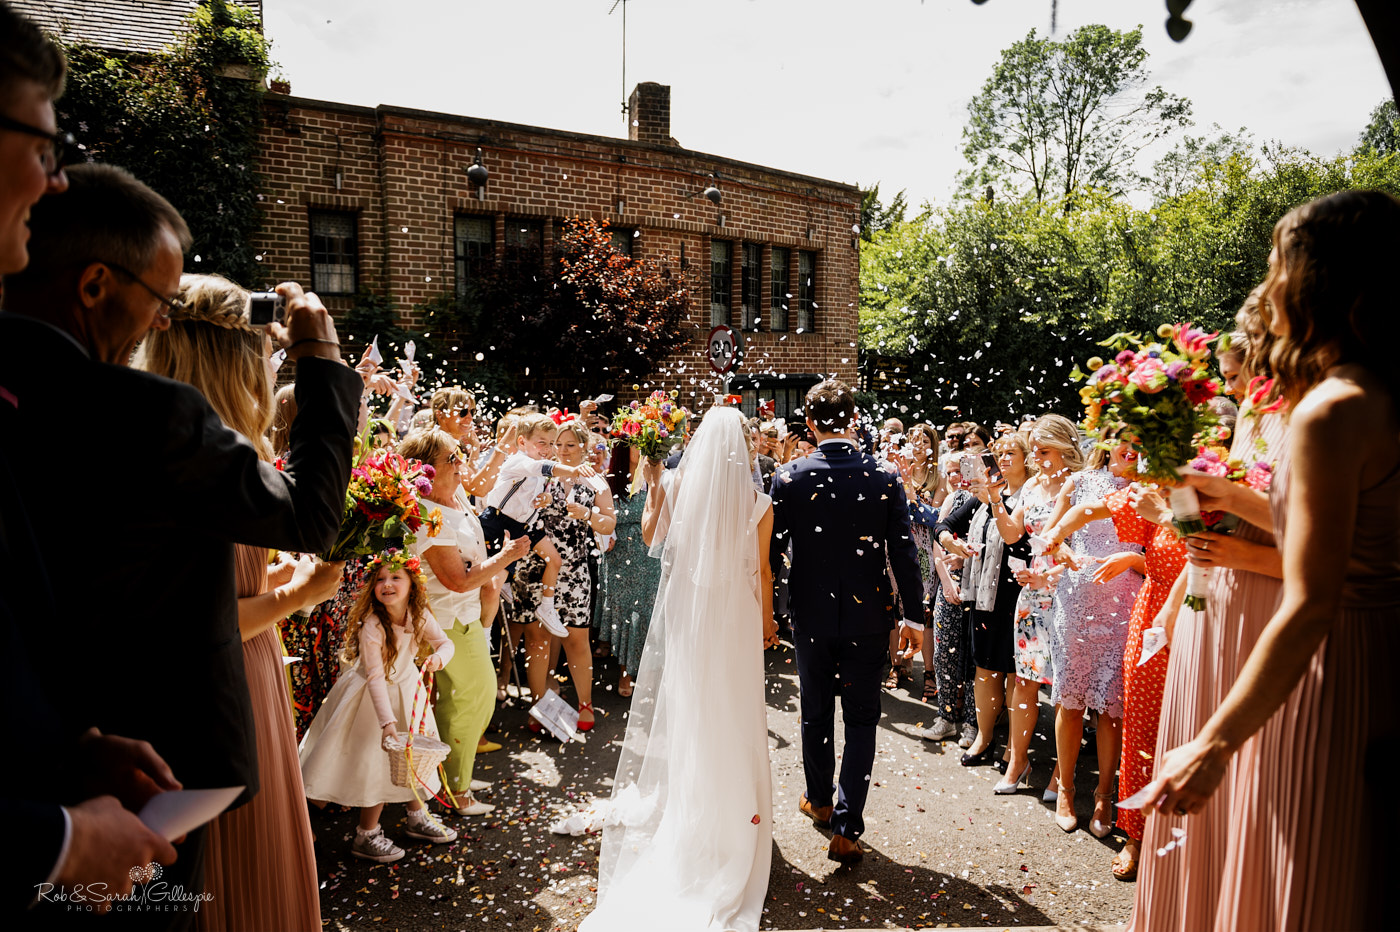 Confetti thrown at wedding in Clent, Worcestershire